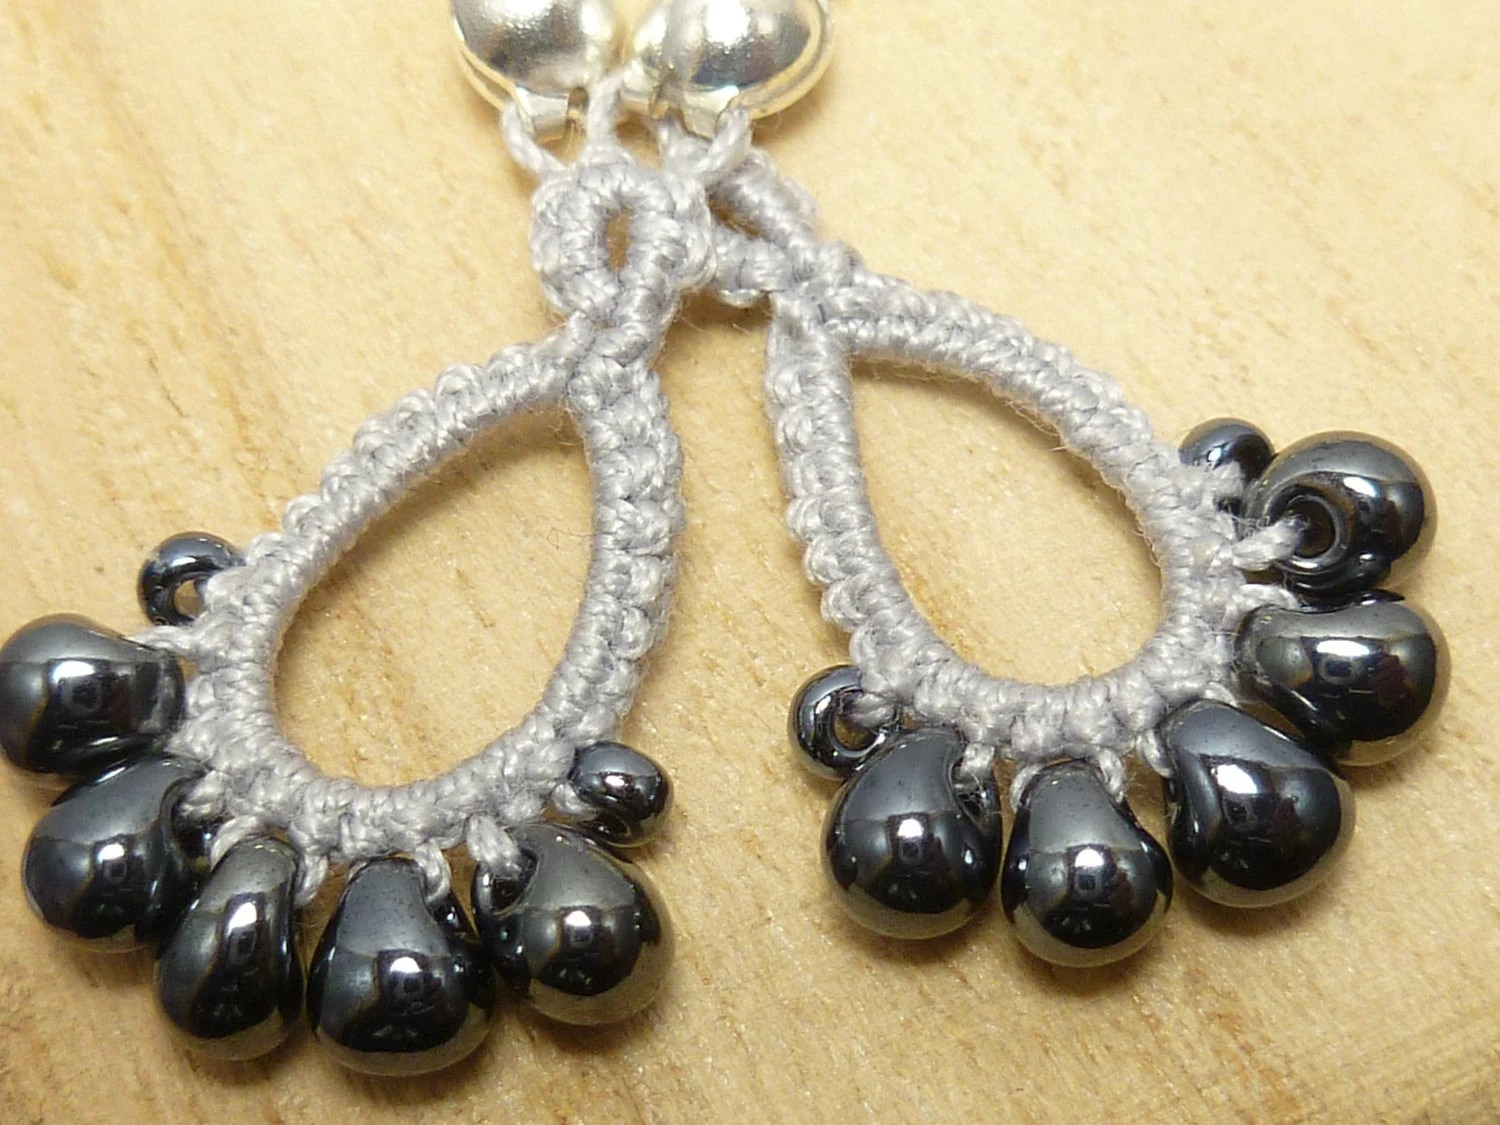 Tatted Lace earrings in Silver -Drips